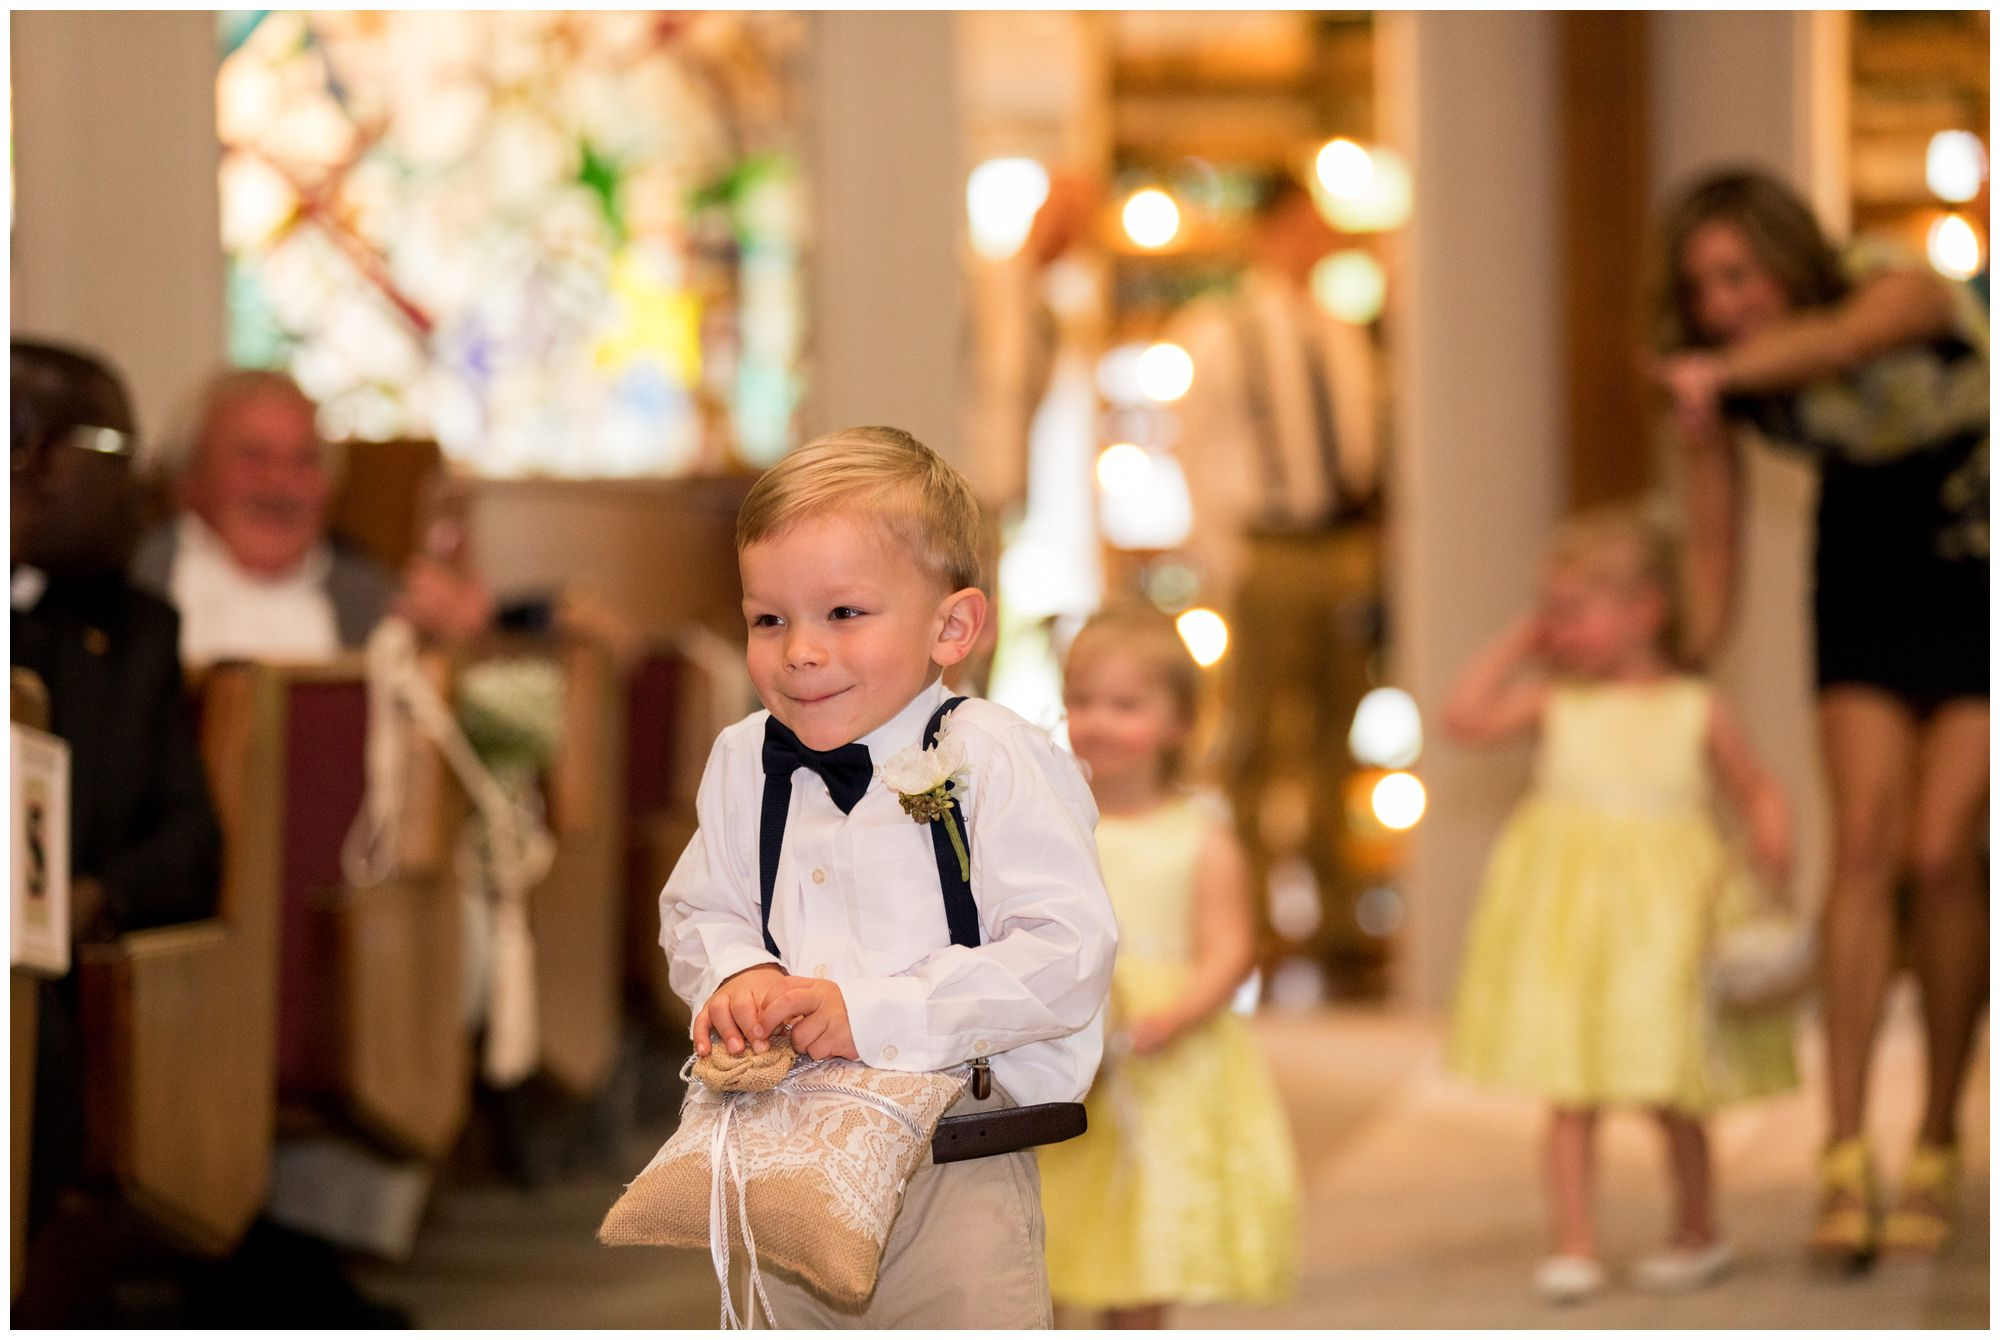 ring bearer comes down aisle during wedding ceremony in Muncie Indiana